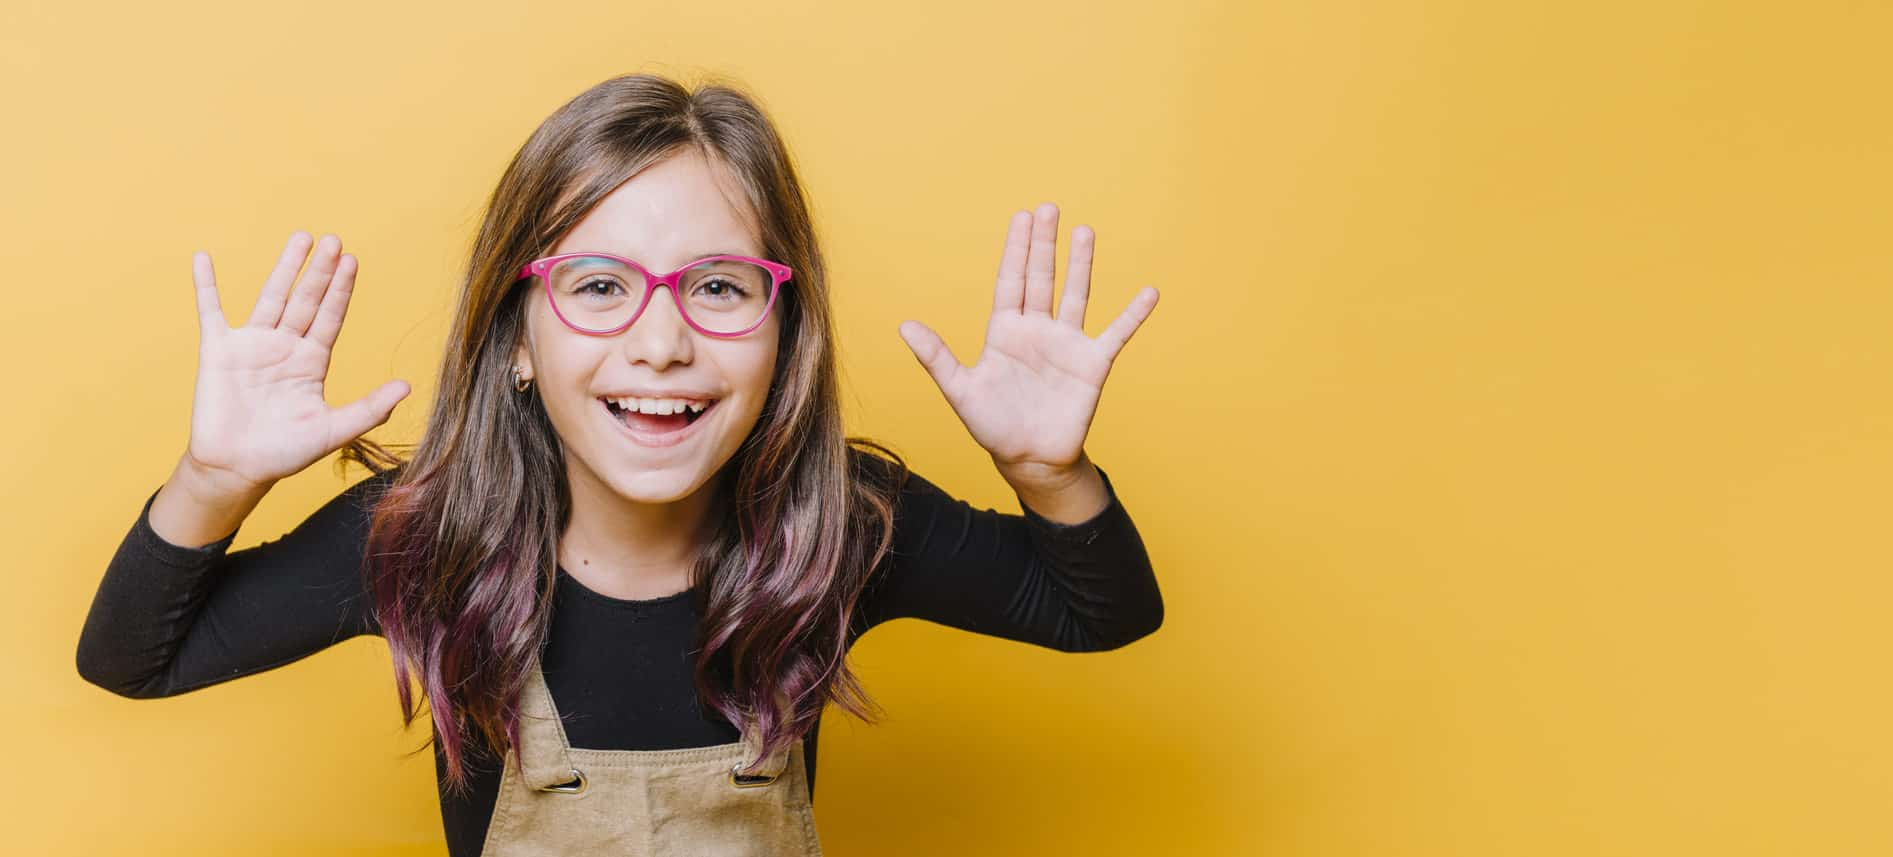 First Optic Childrens Eyewear Hero Image